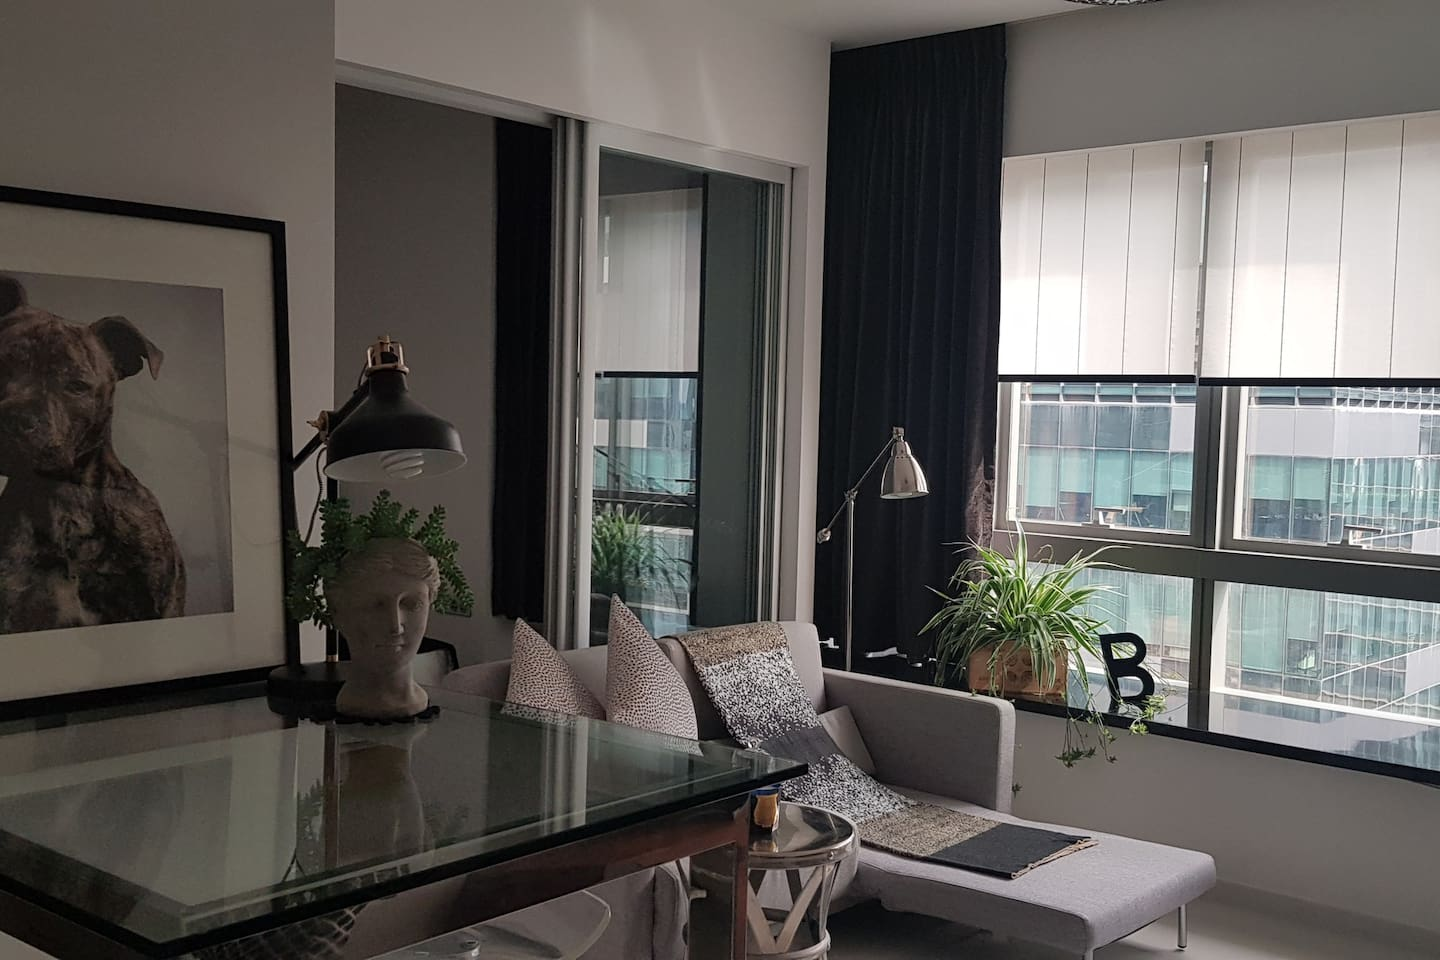 50sqm - Luxury Studio apartment with Full amenties and  Kitchen